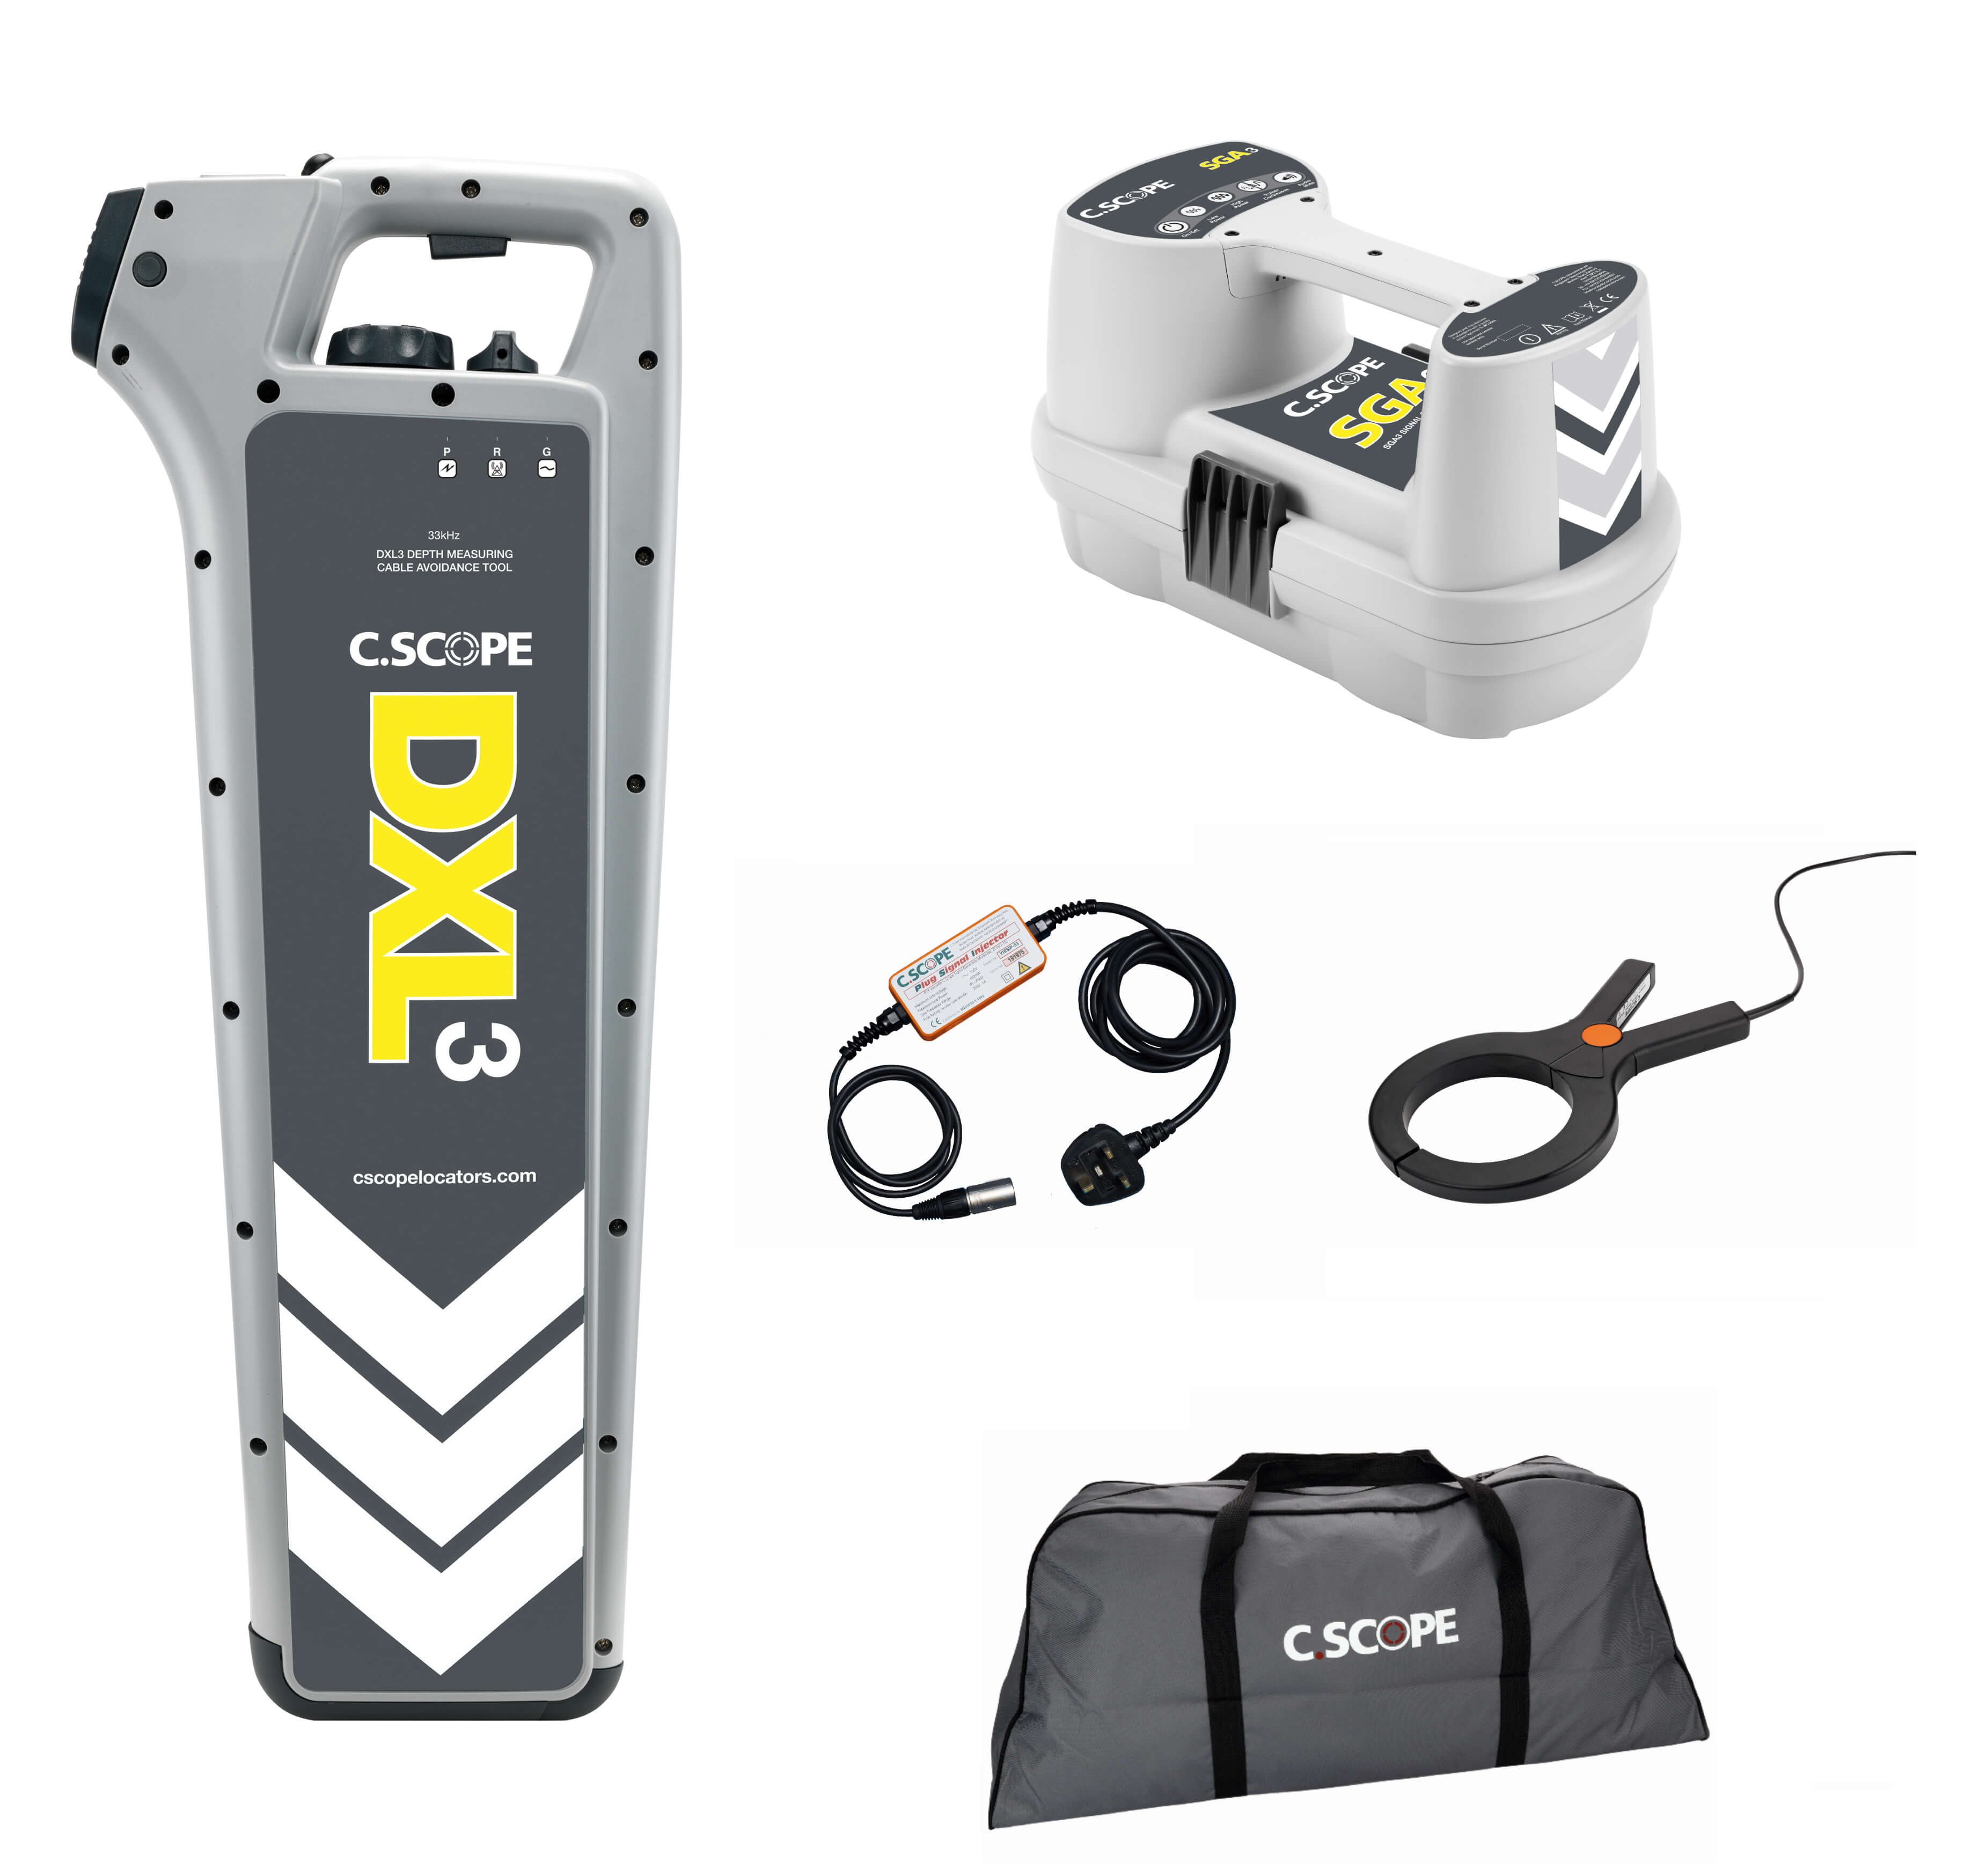 C.Scope DXL3 Top Value Electricians Kit with SGA3 Signal Generator and Soft bag - Cable Detector Calibration & Sales